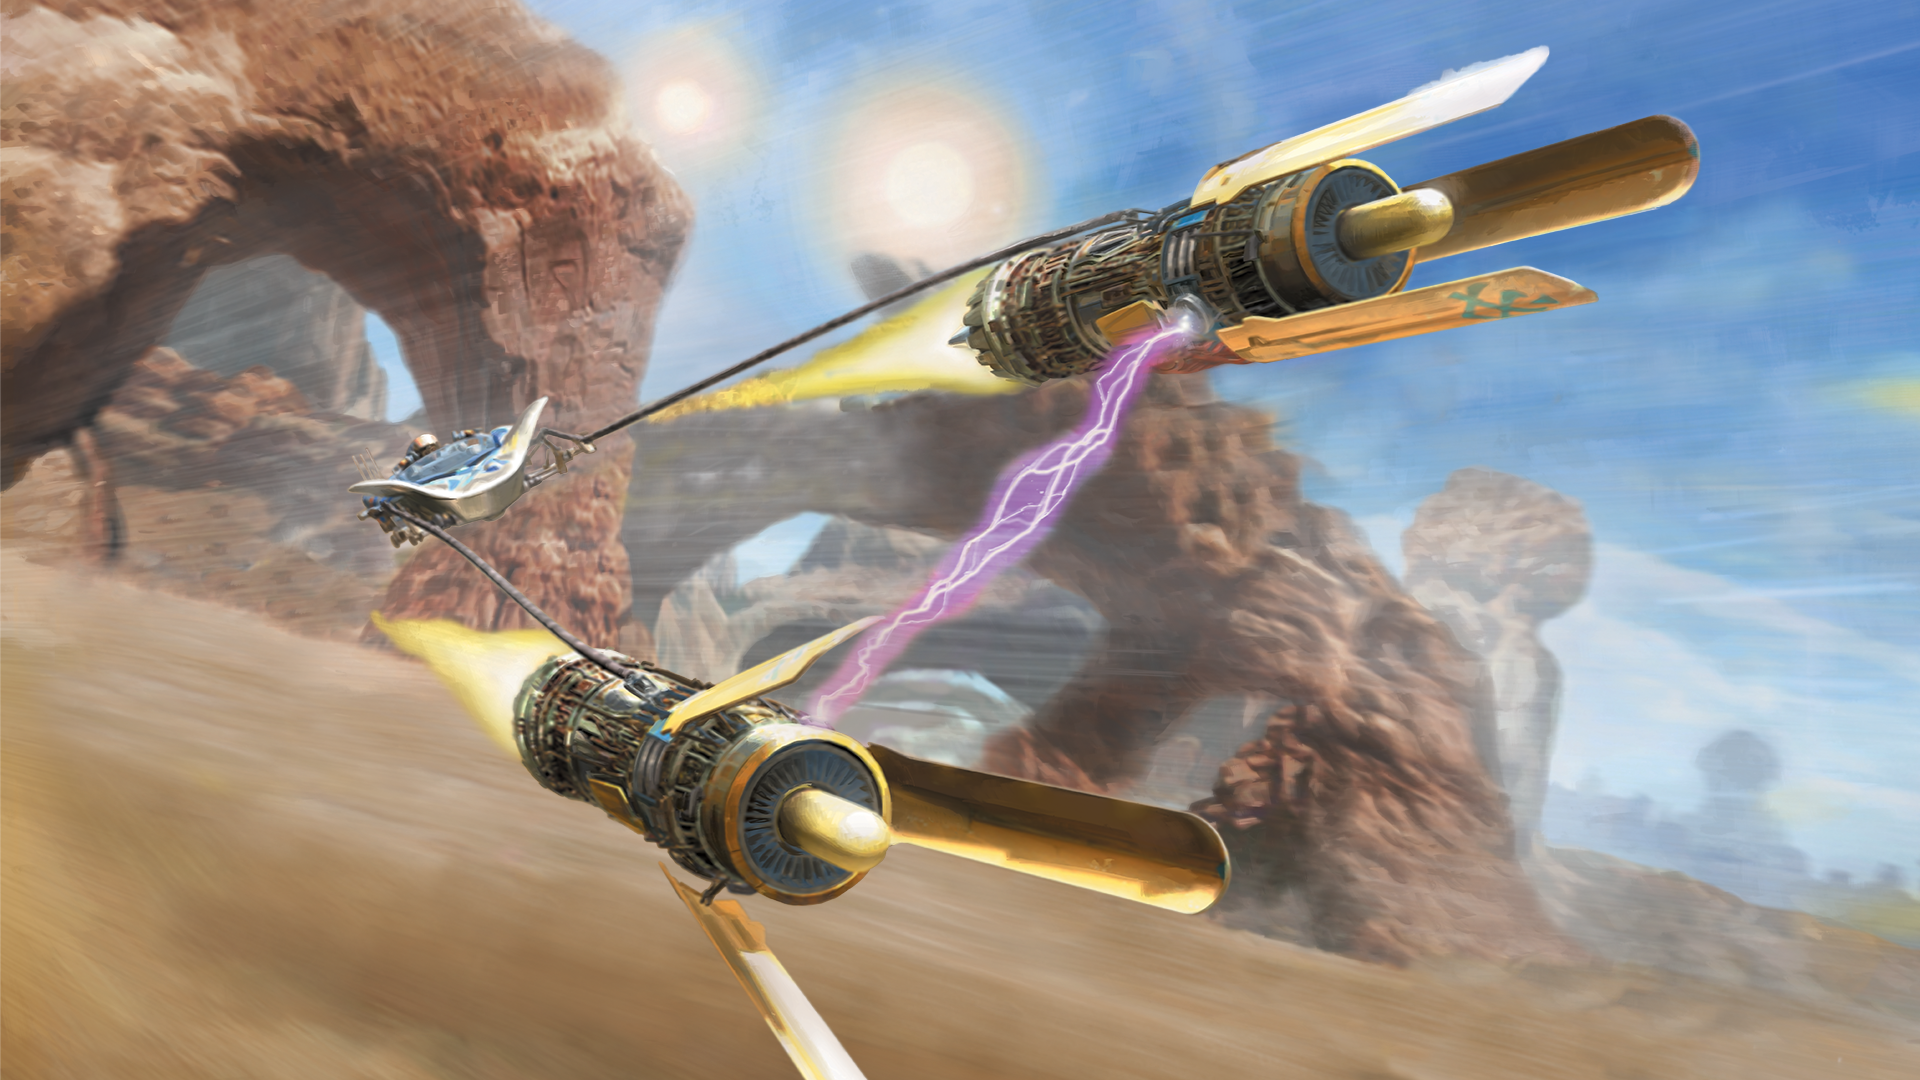 This is podracing